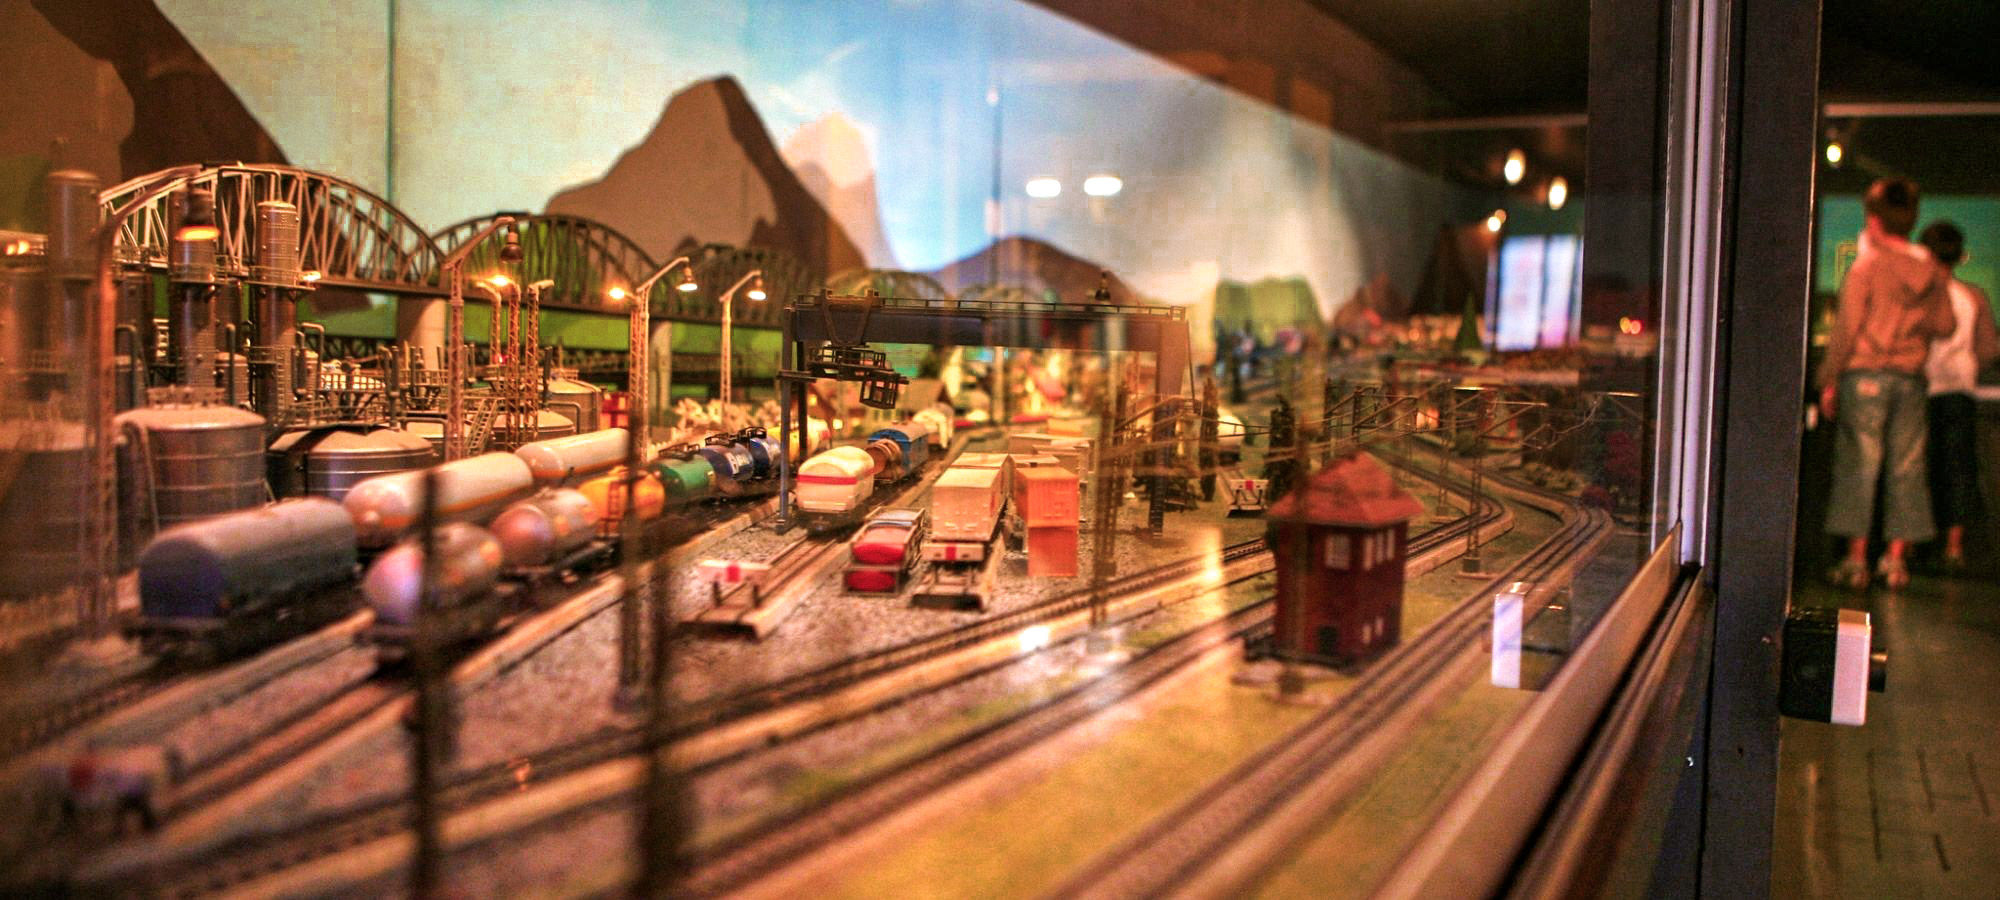 Toy train set and train station behind glass on display in toy museum, Speelgoedmuseum, Mechelen